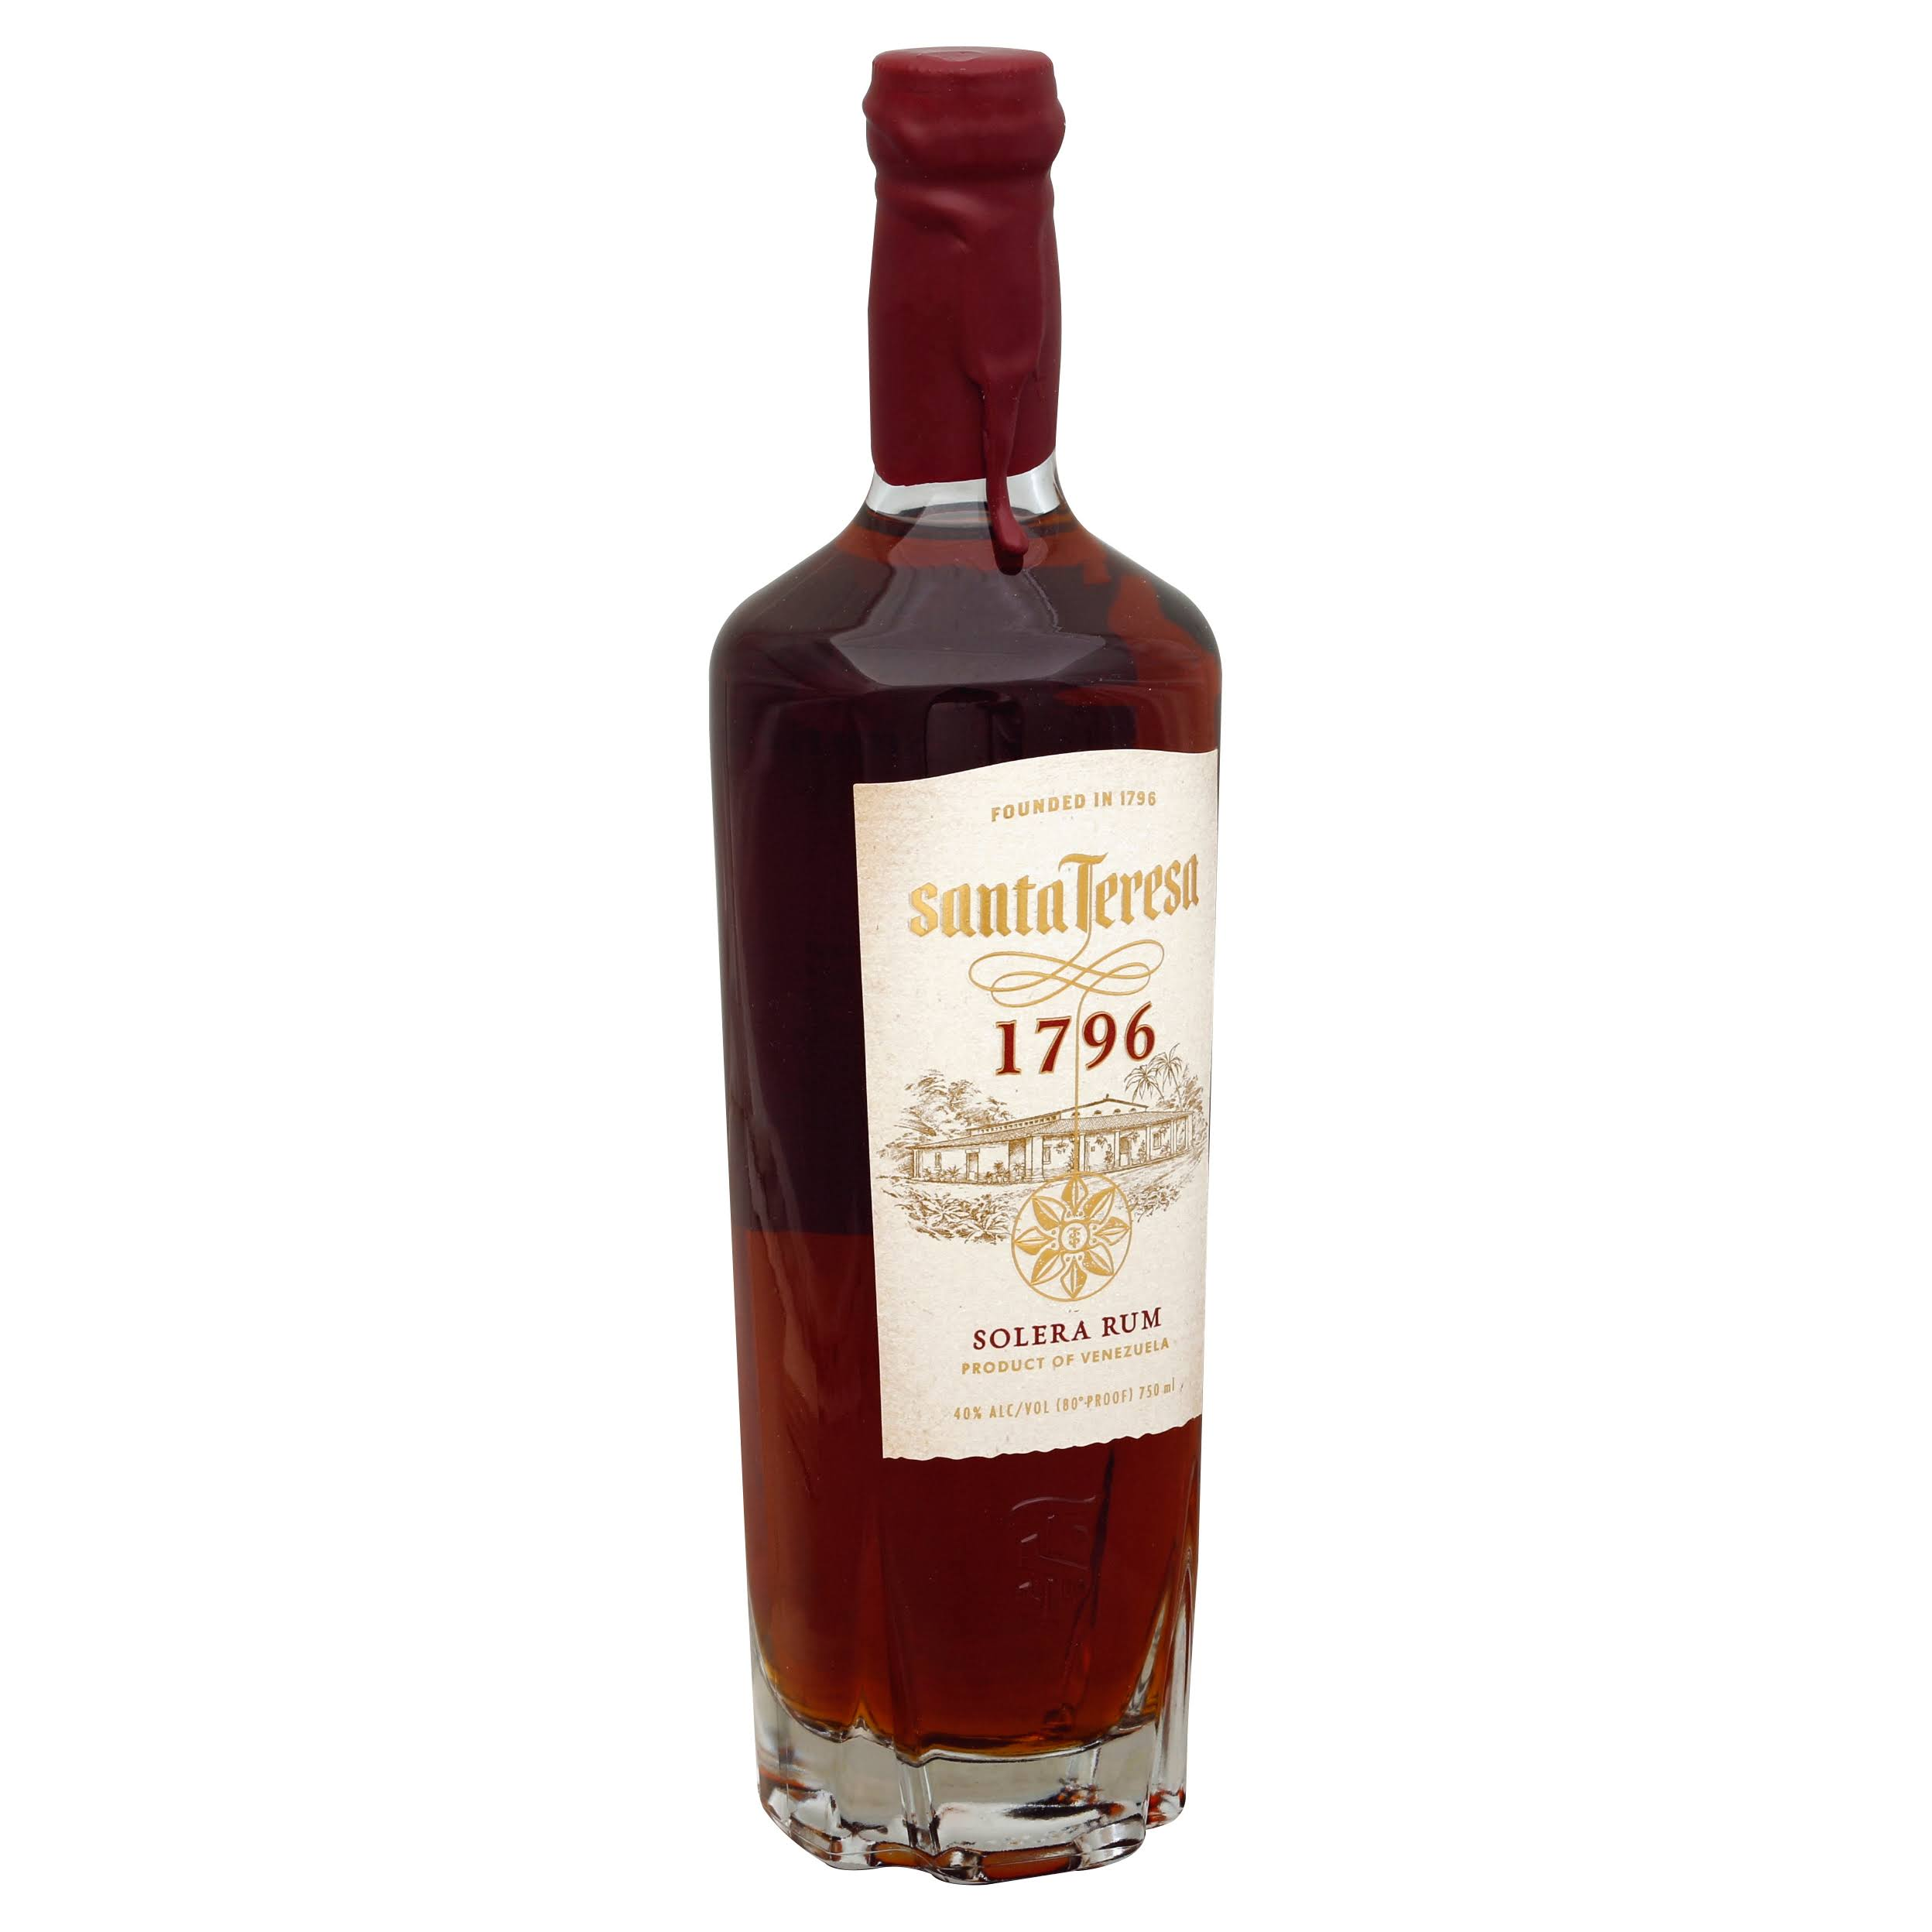 Santa Teresa 1796 Solera Rum - 750 ml bottle